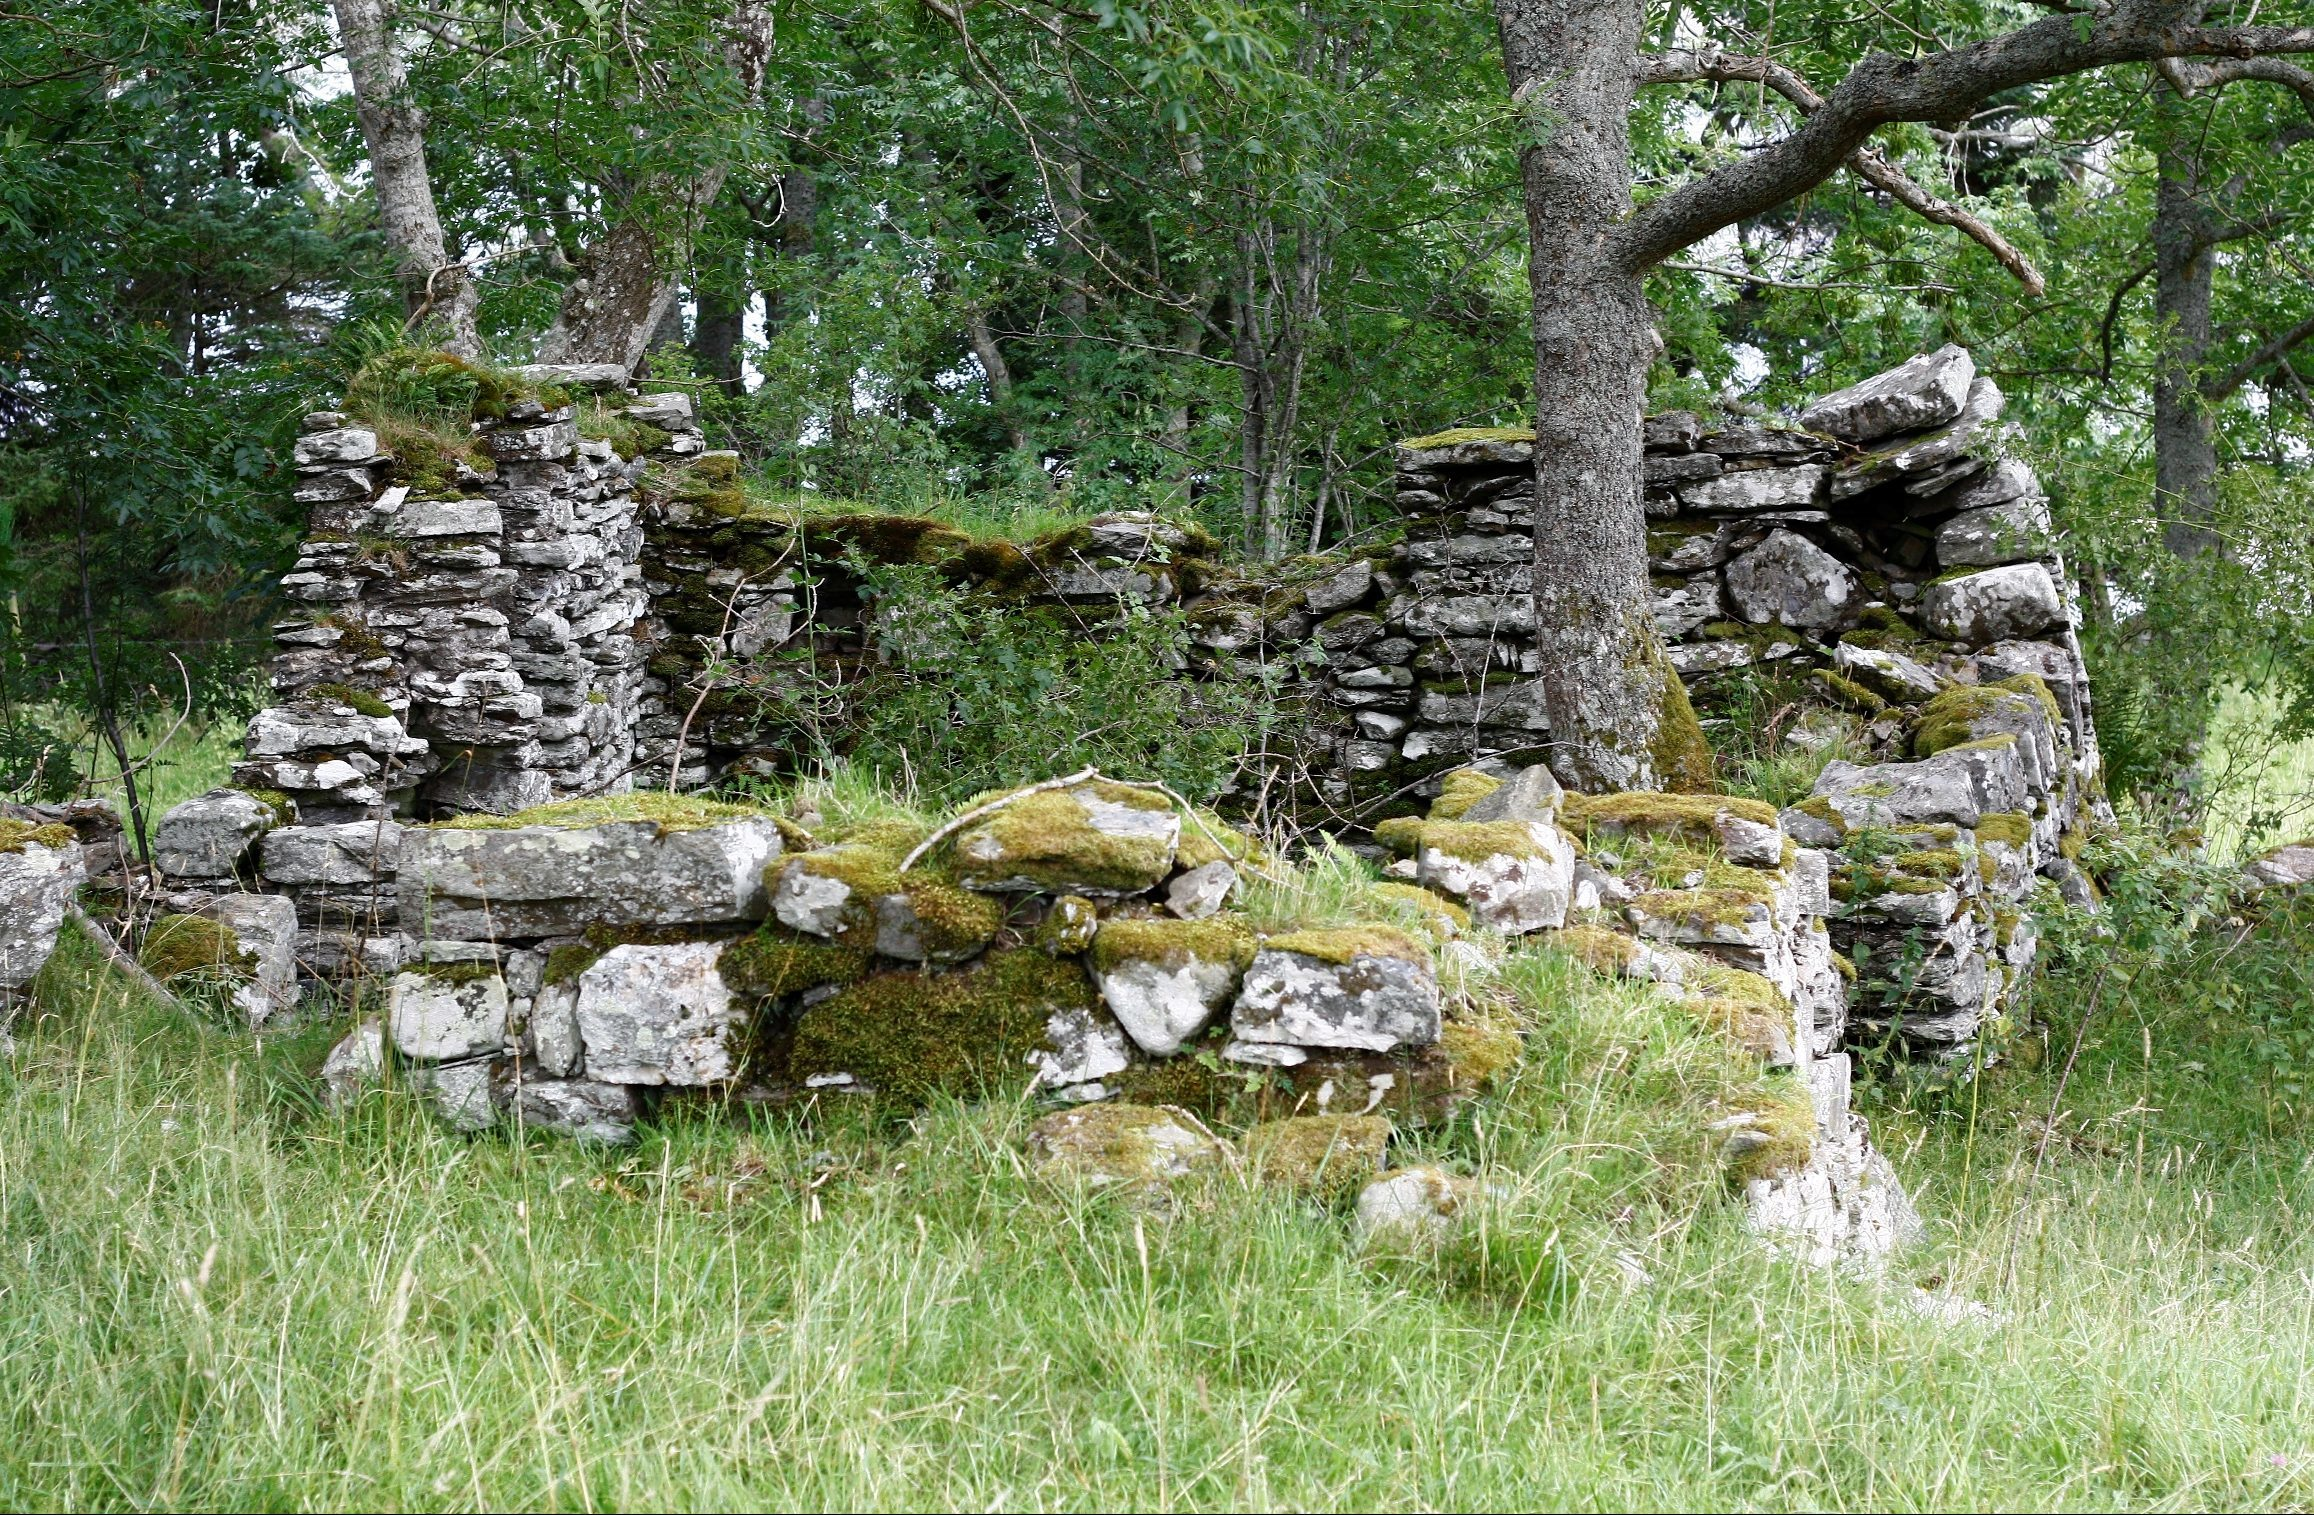 Ruins on the site.